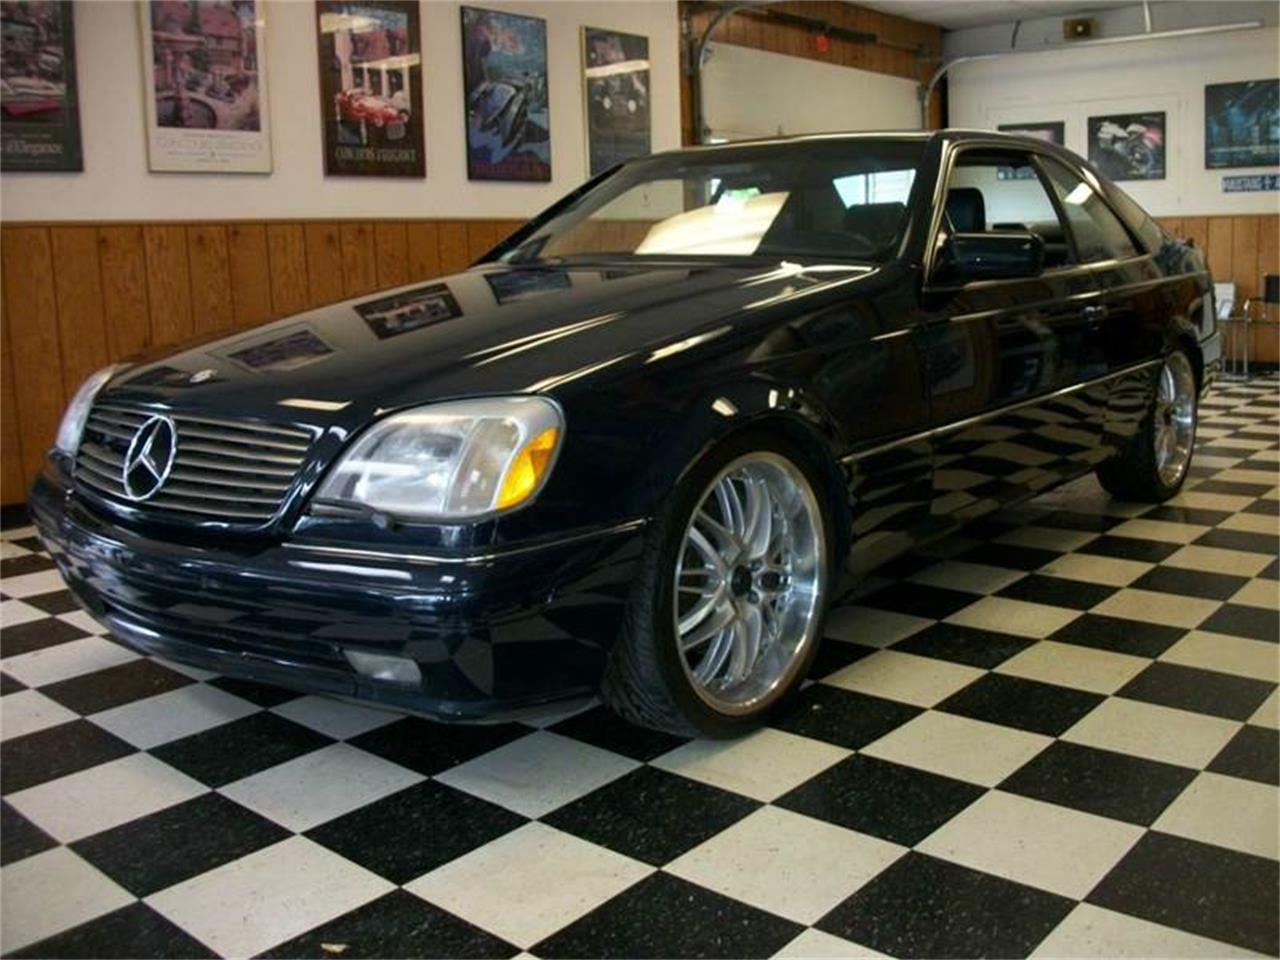 Large Picture of 1997 Mercedes-Benz S-Class located in Michigan Offered by Yono Brokerage Services, Inc. - L2YK